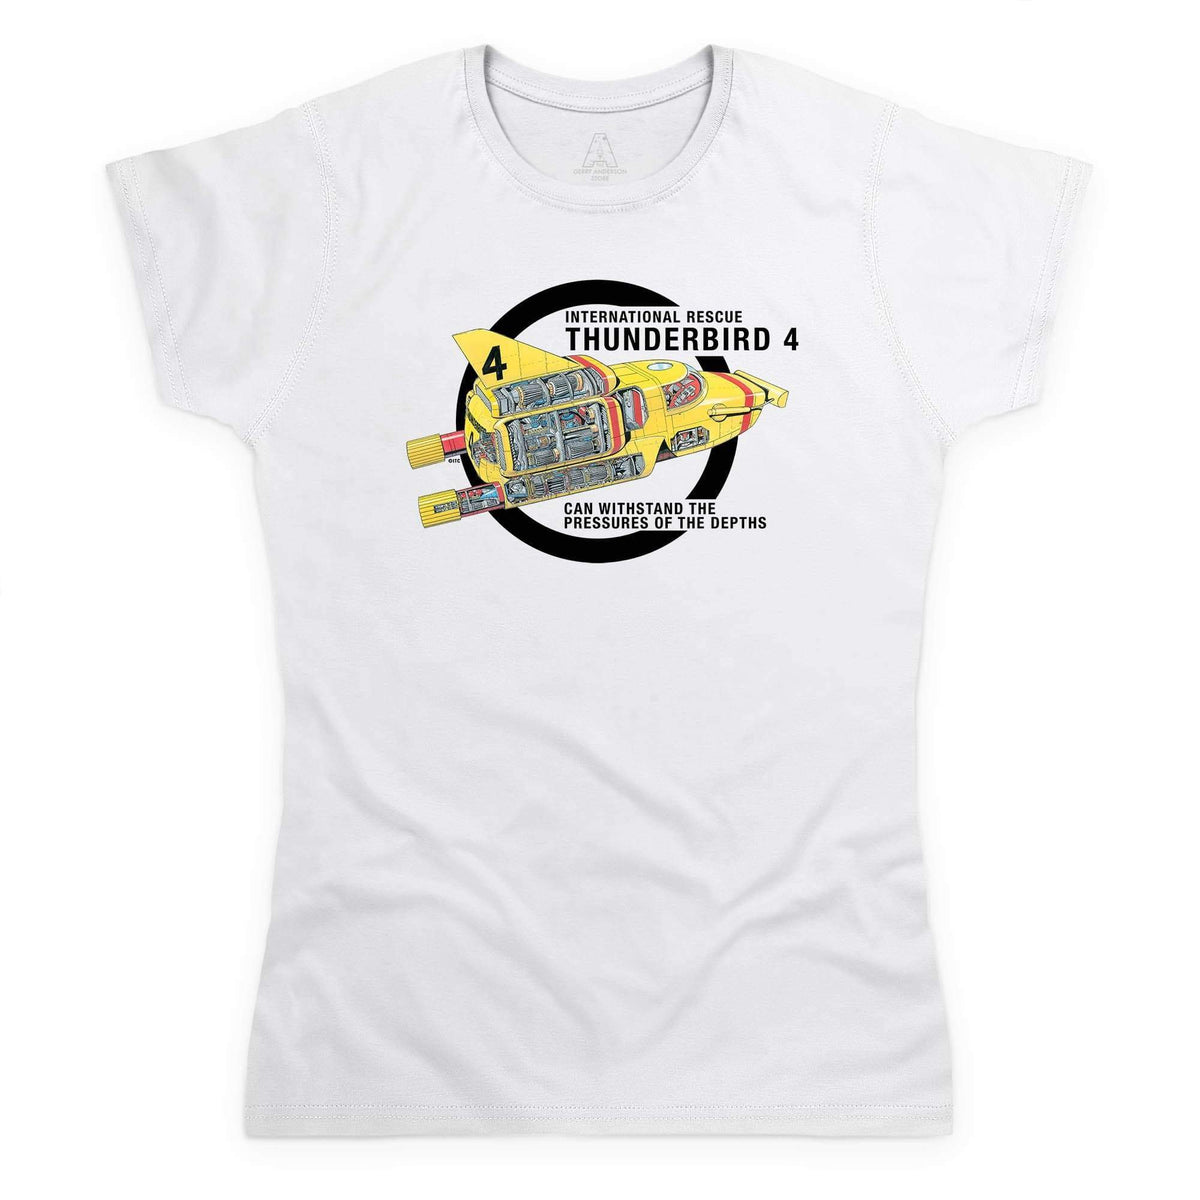 Thunderbirds: Thunderbird 4 Cutaway Women's White T-Shirt [Official & Exclusive] - The Gerry Anderson Store